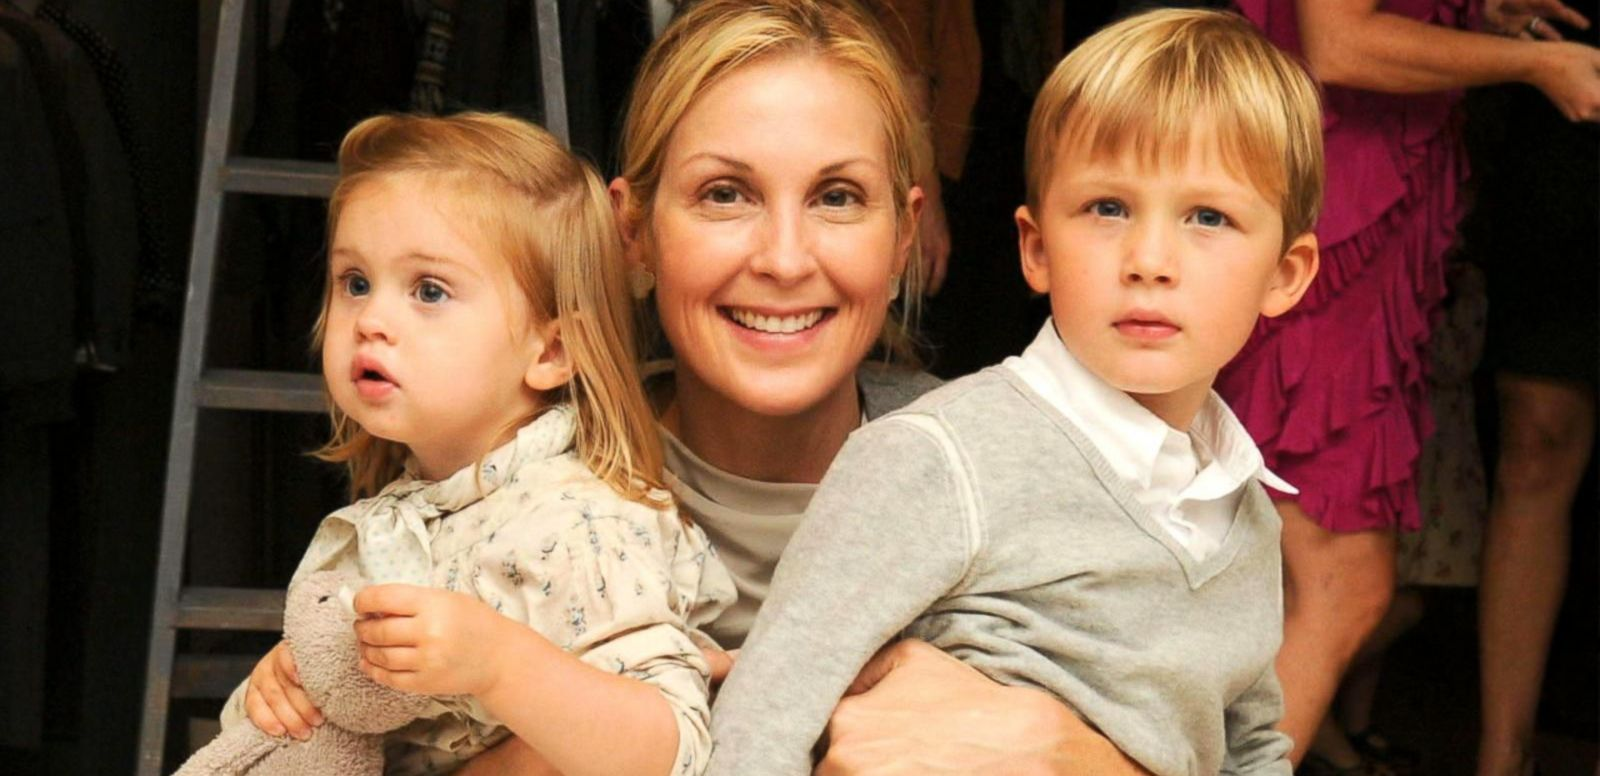 VIDEO: Kelly Rutherford Custody Battle May Not Be Over After All